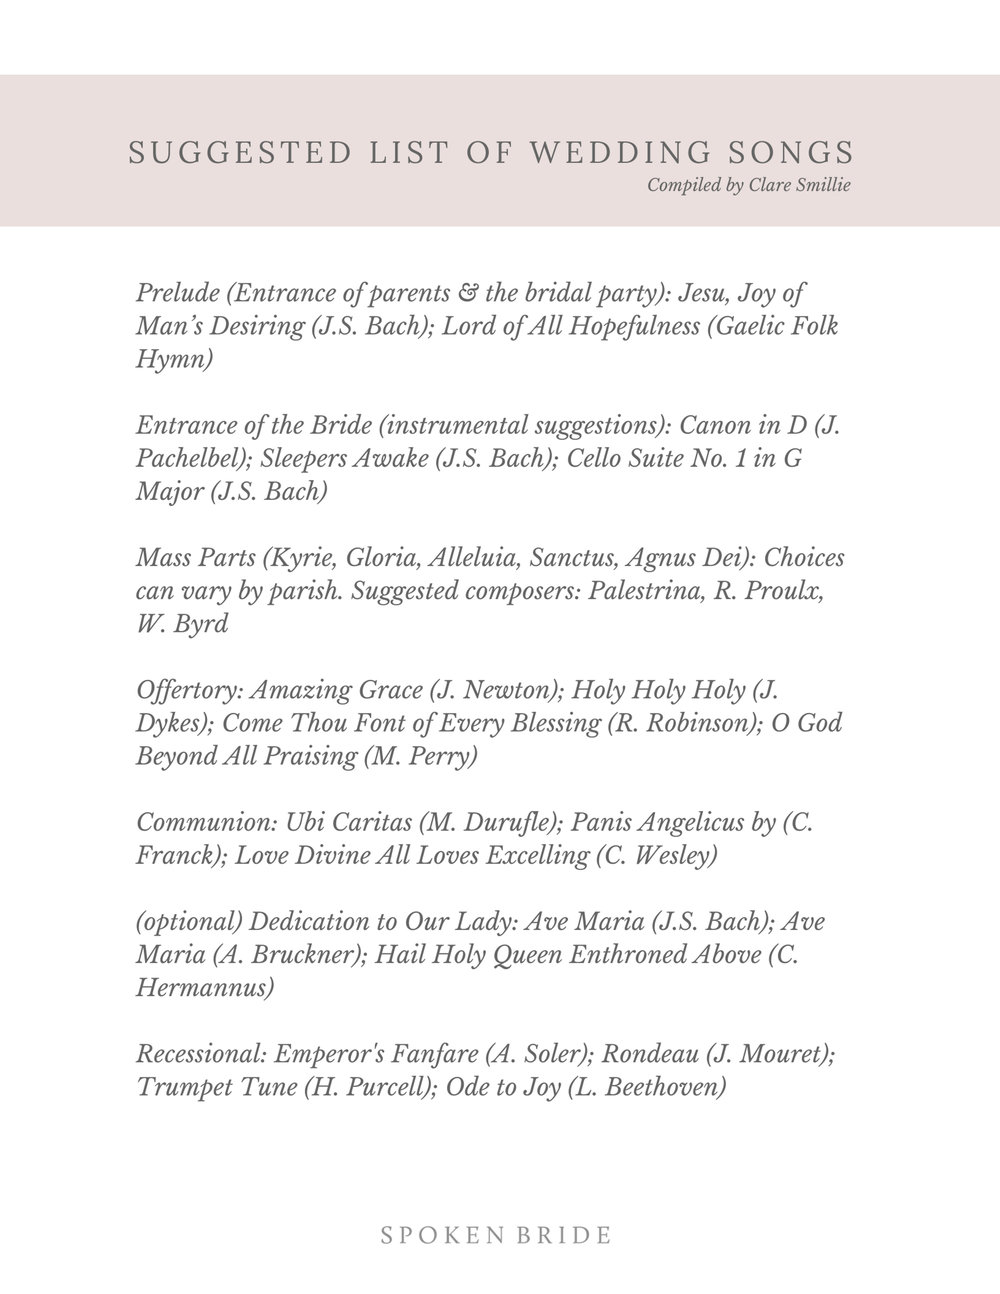 Sacred Music - Print Out Template.jpg